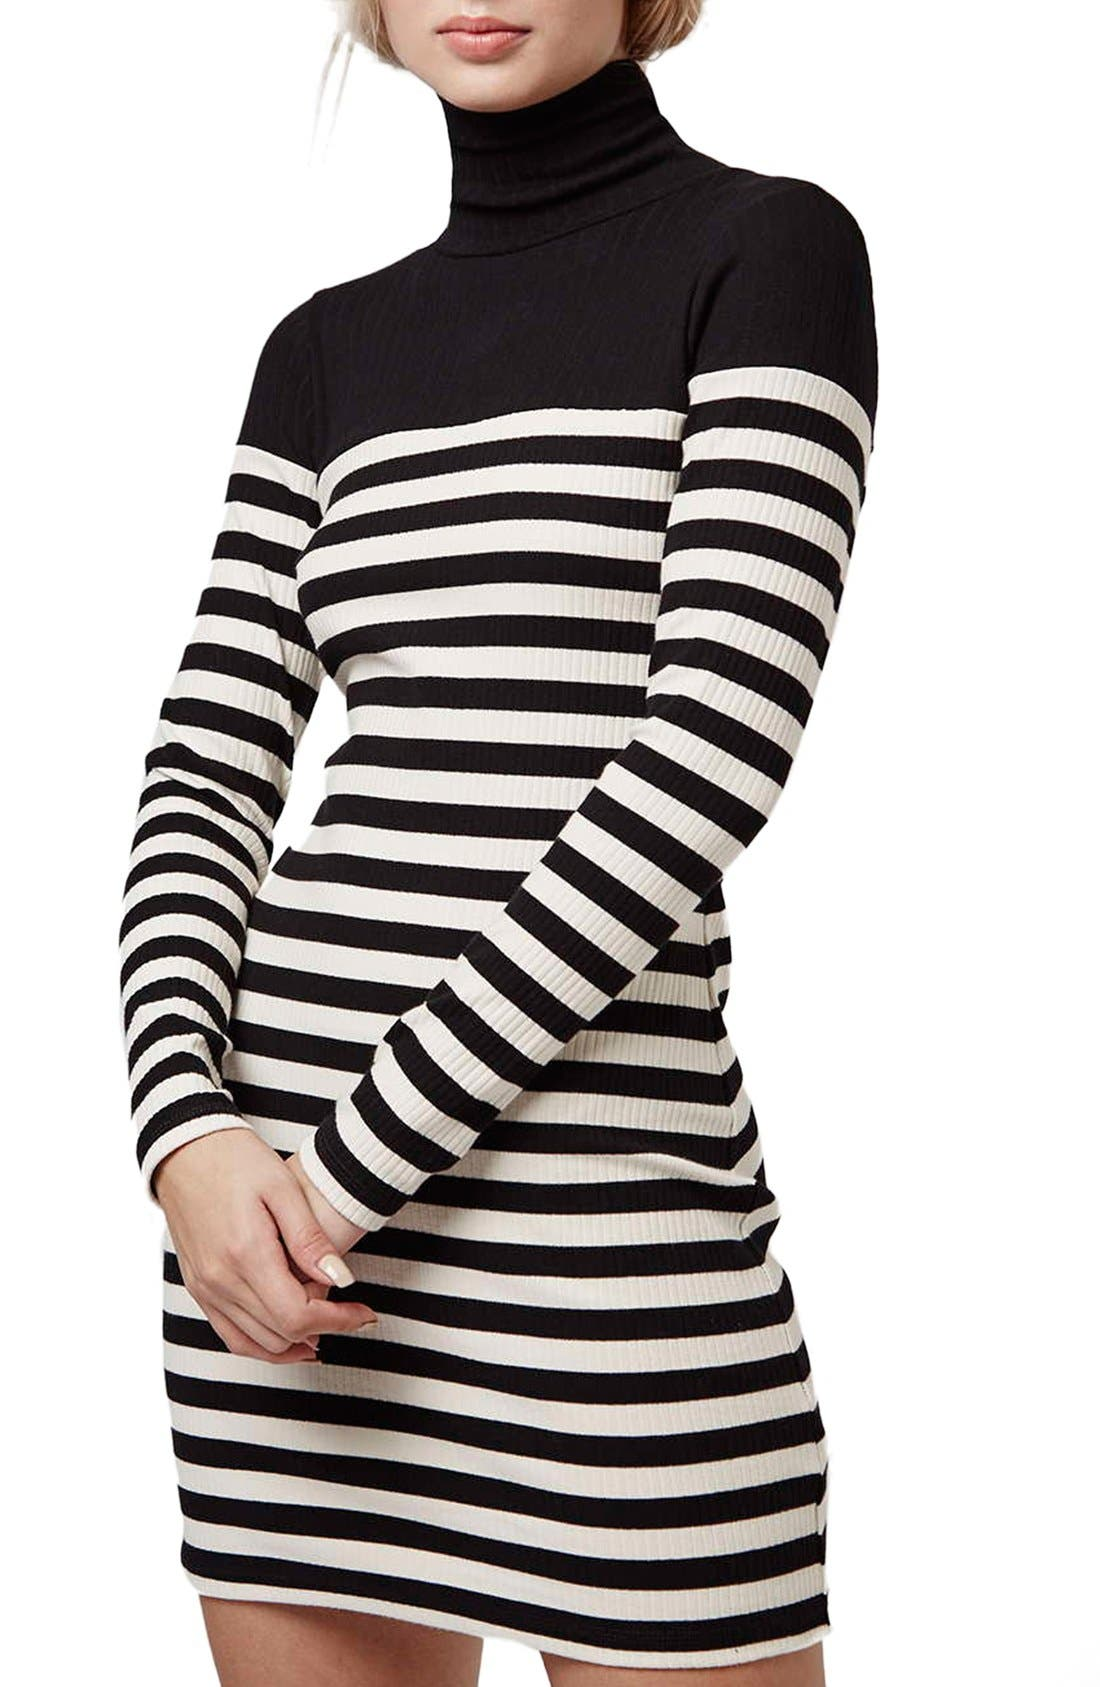 Alternate Image 1 Selected - Topshop Turtleneck Long Sleeve Body-Con Dress (Petite)